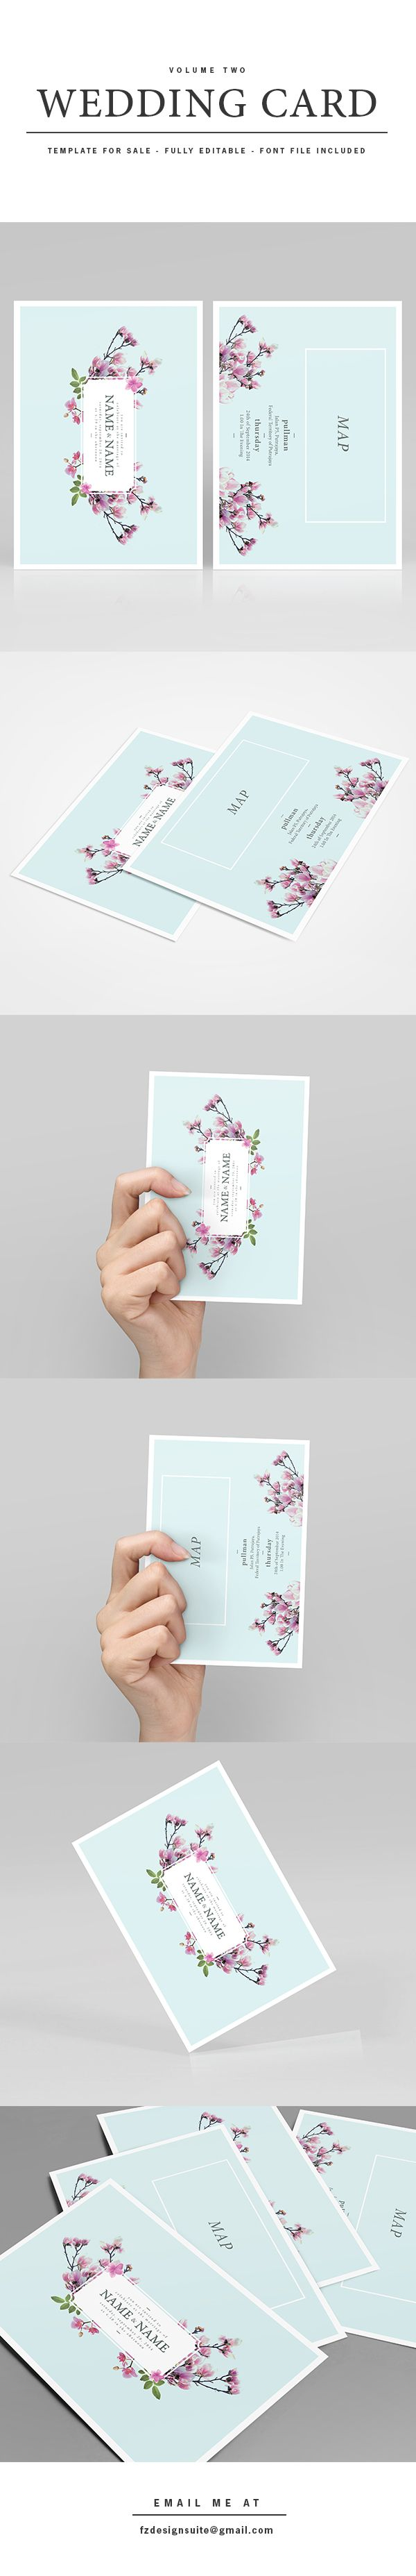 FOR SALE) Wedding Invitation Template - Volume 2 on Behance | Design ...